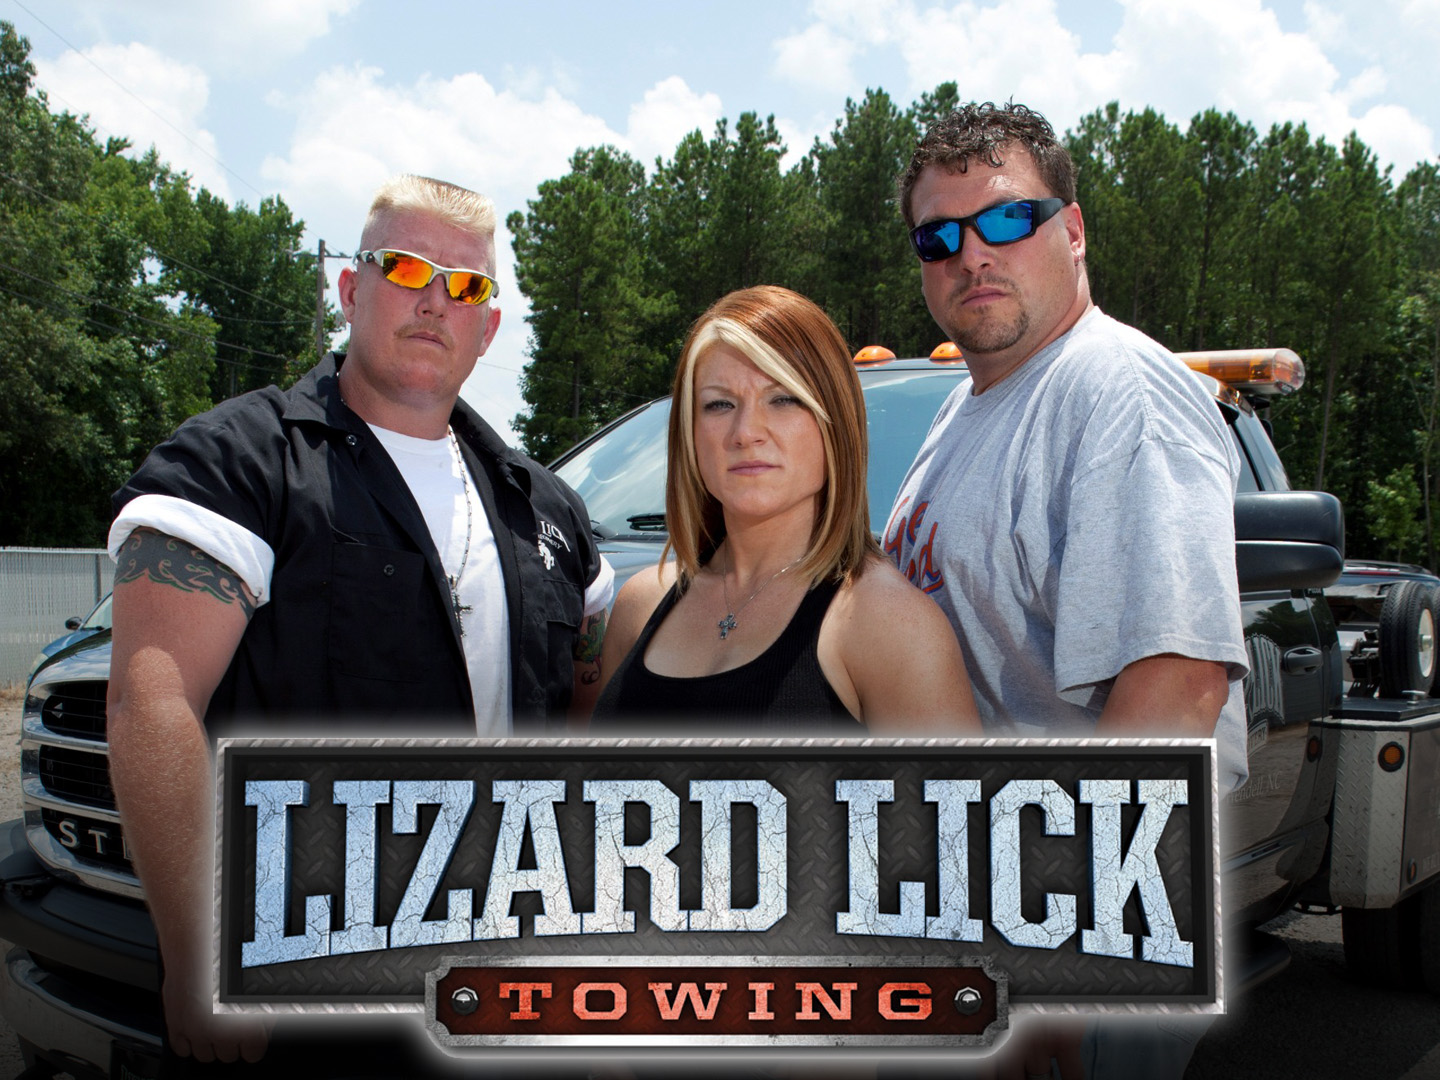 What words..., Amy off lizard lick towing naked absolutely